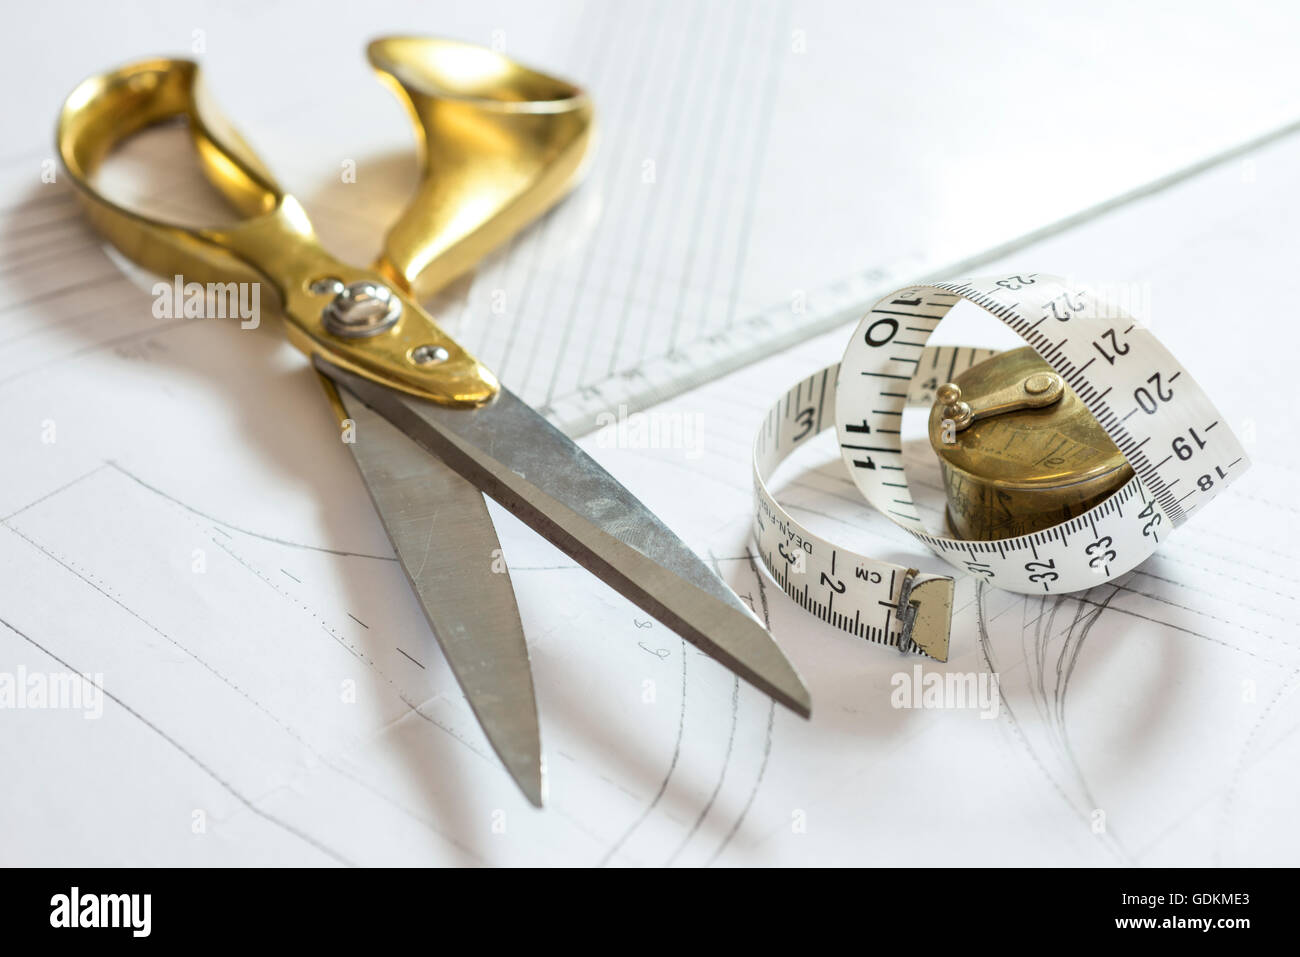 Scissors Tape Measure Stock Photos & Scissors Tape Measure ...